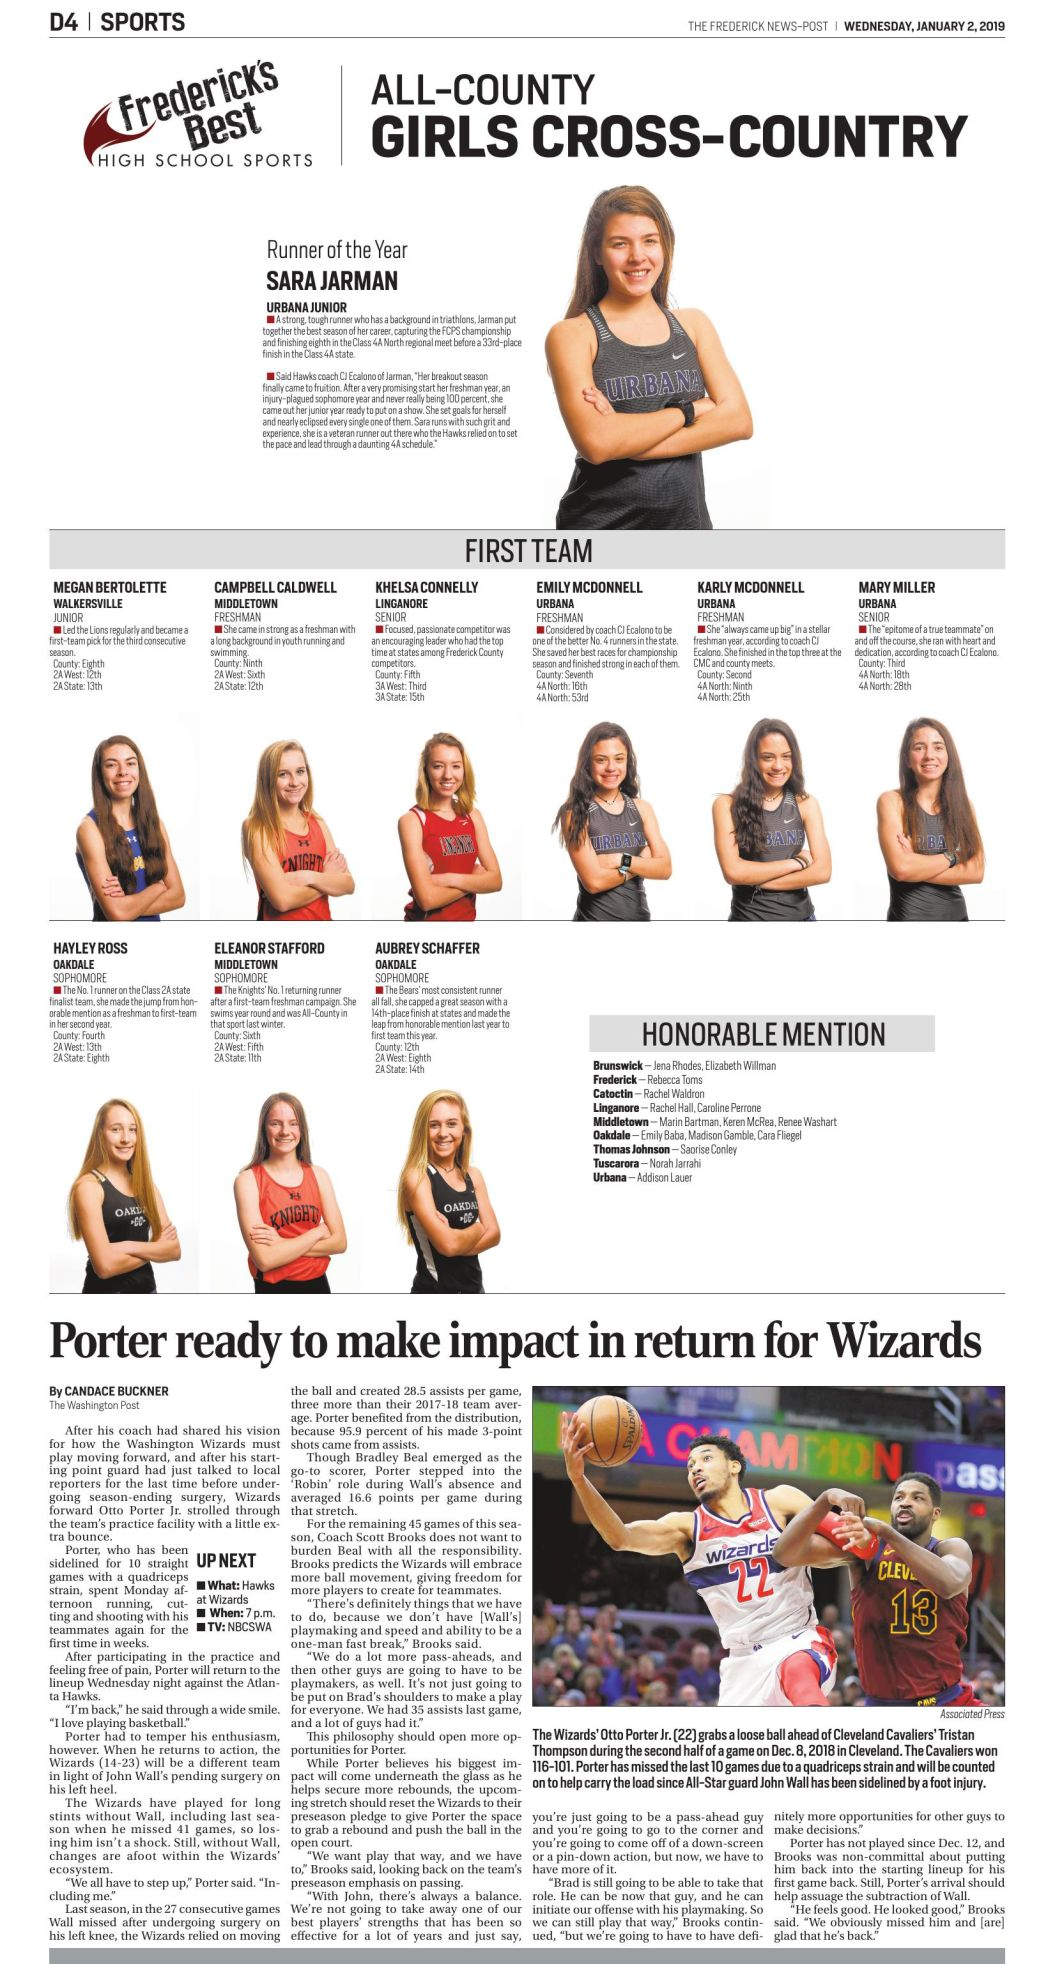 2018 All-County Girls Cross-Country